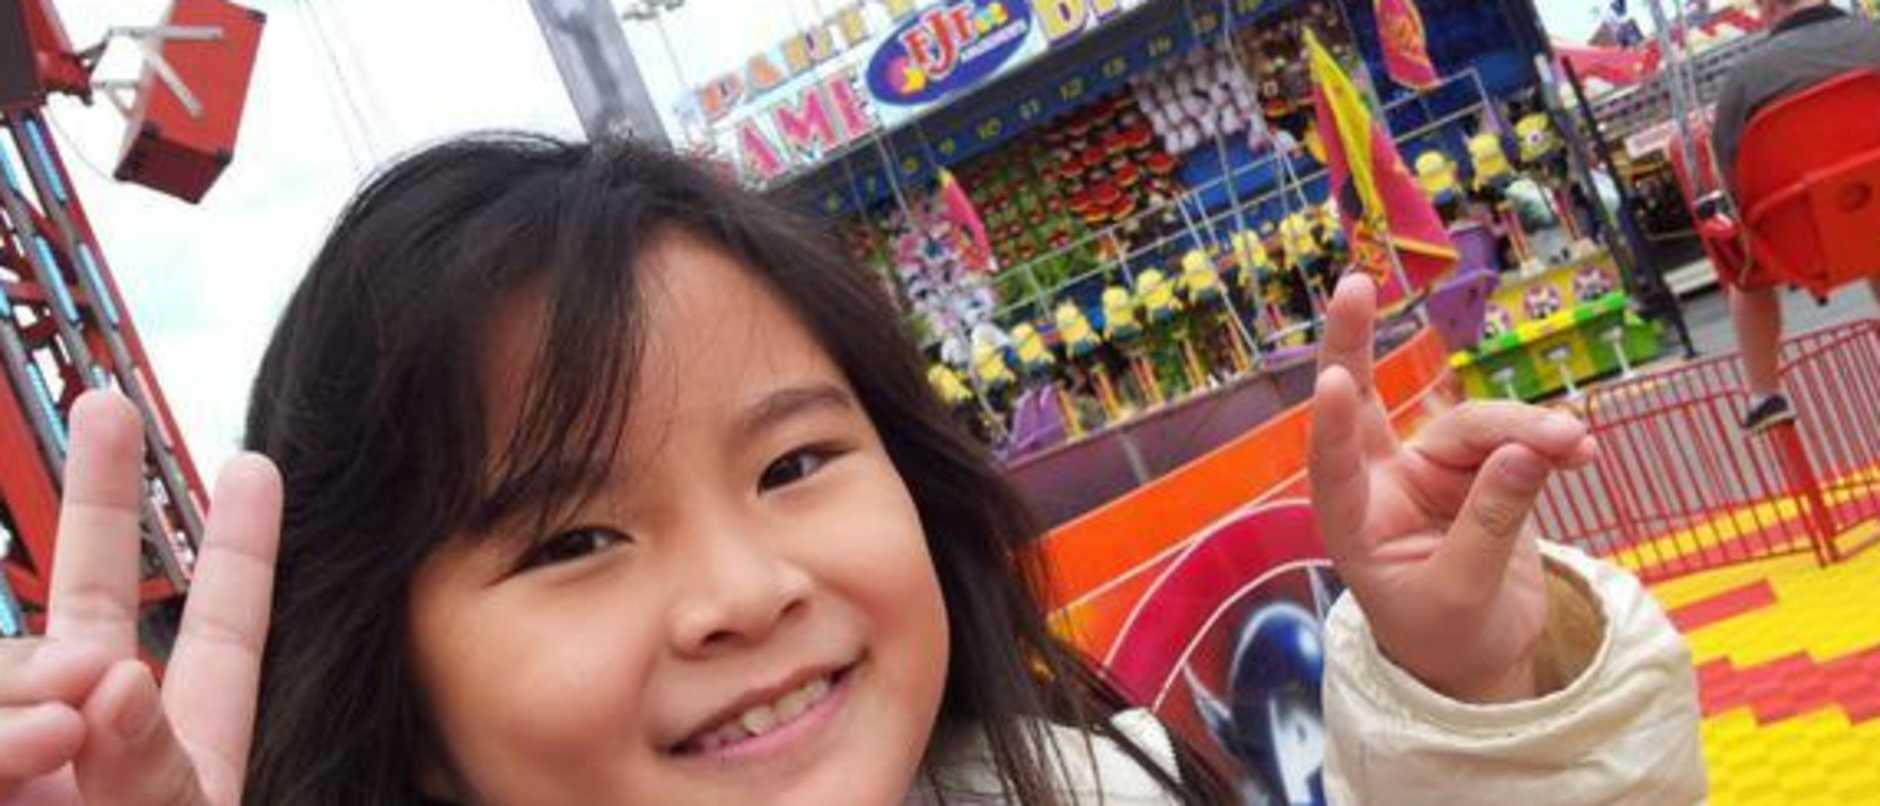 An inquest into the 2014 death of a young girl thrown from a show ride won't examine why some companies involved weren't prosecuted.